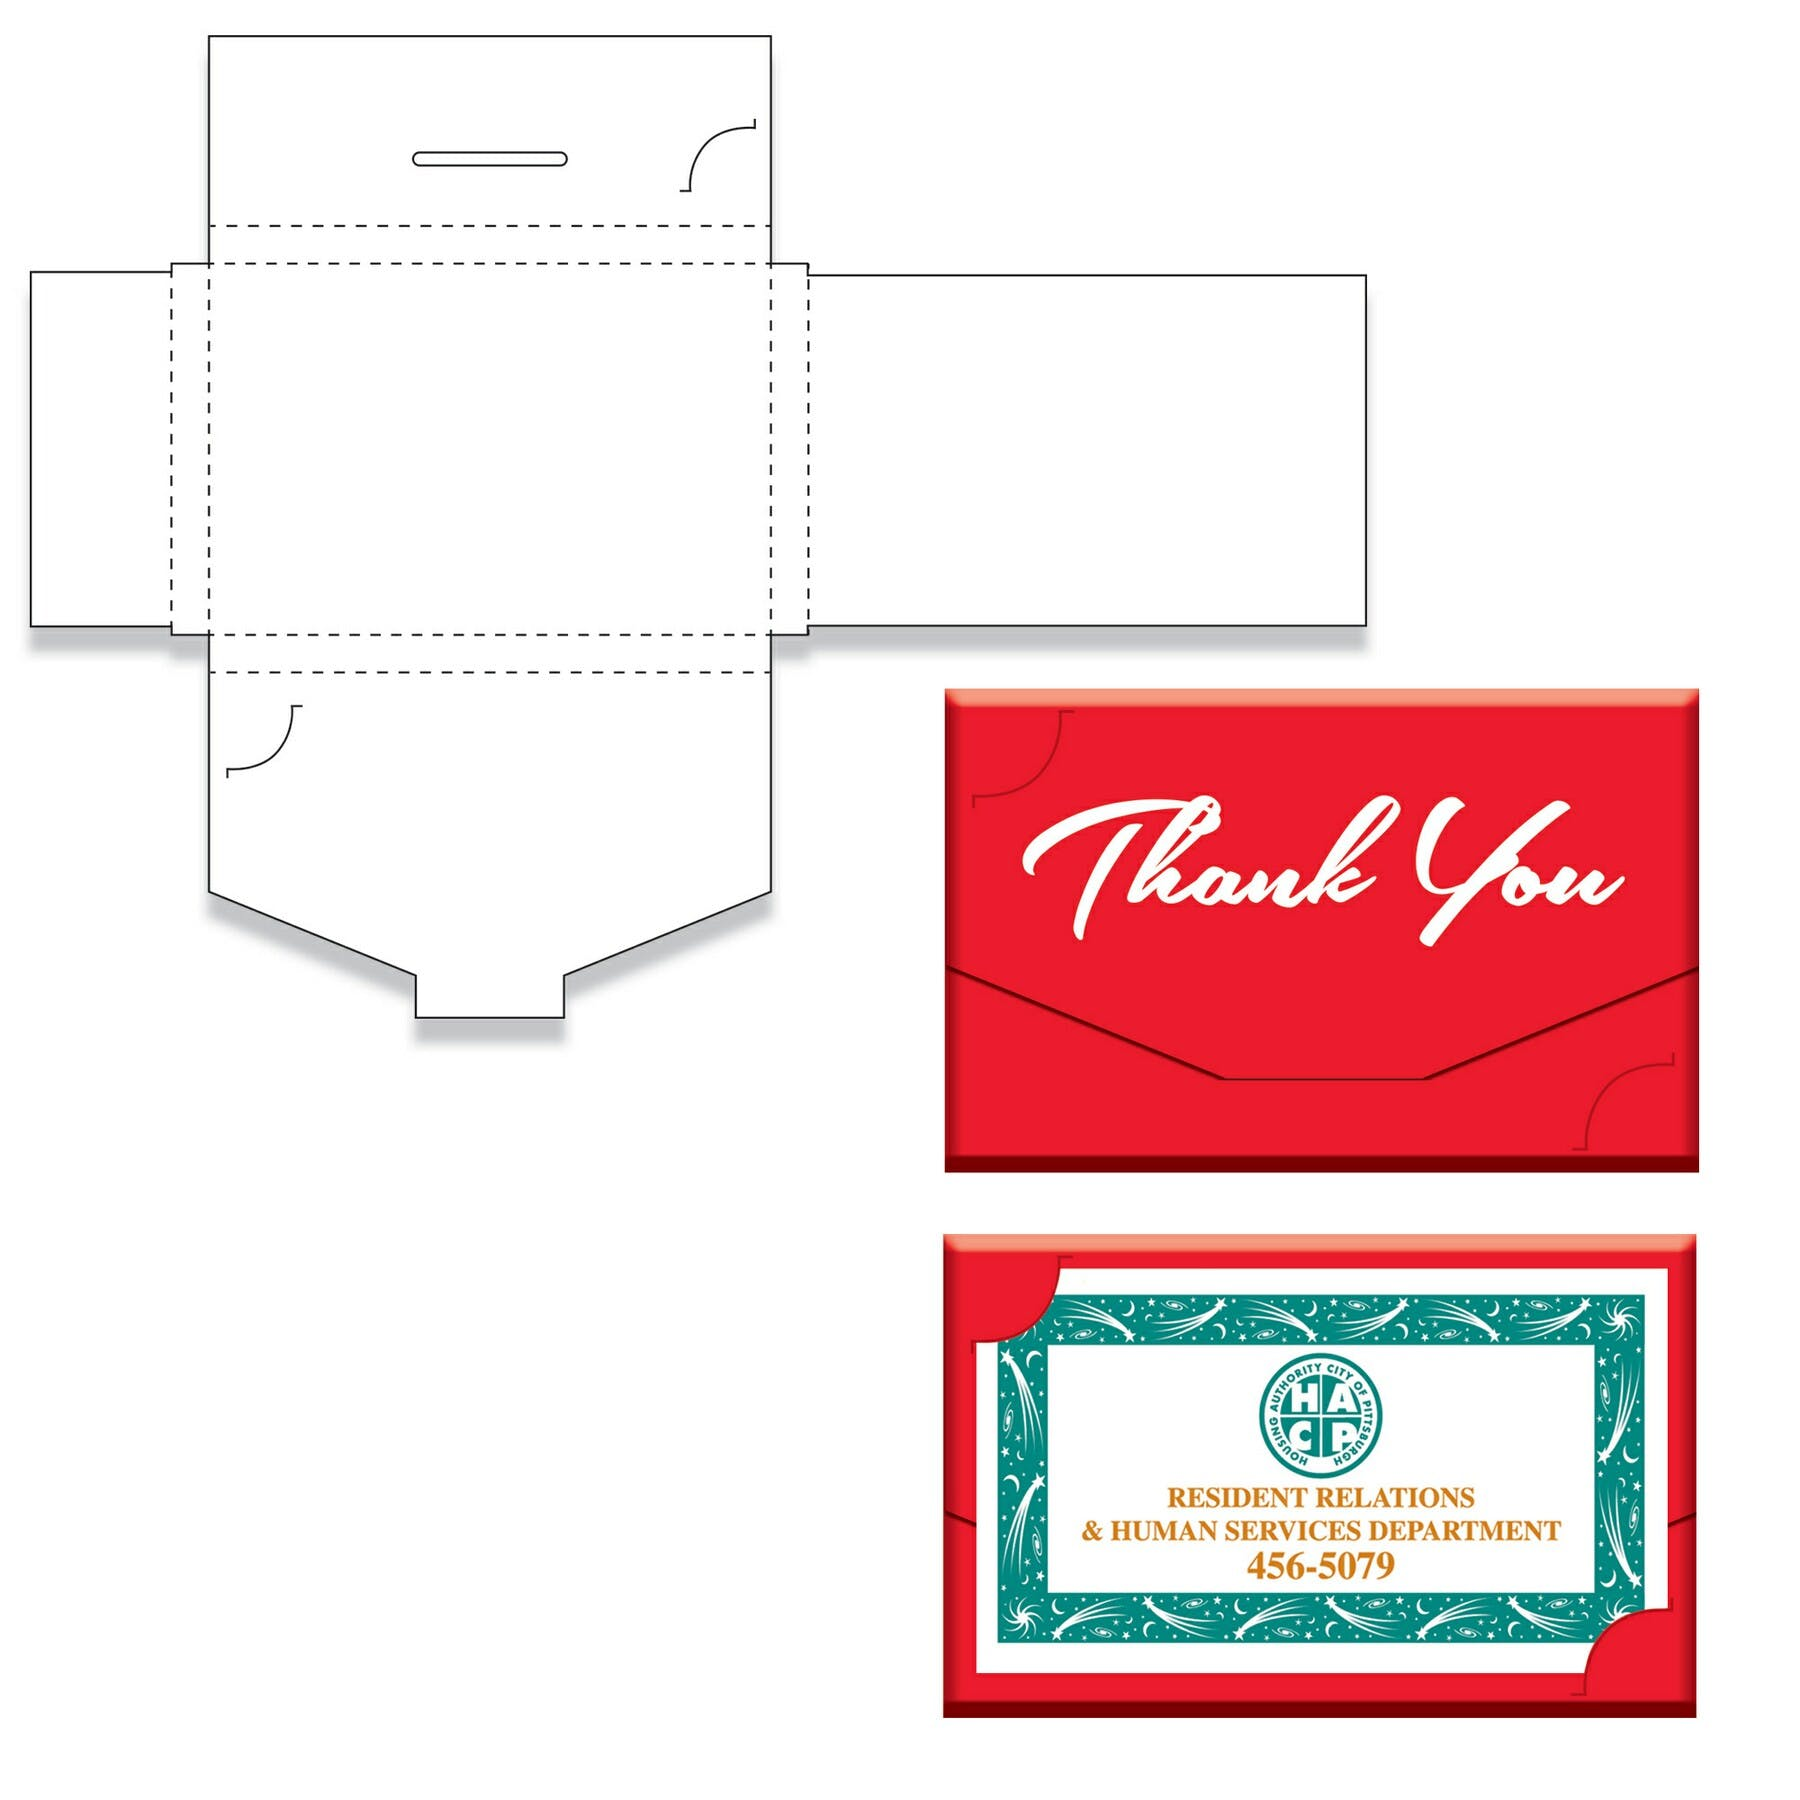 Thank You Gift Card Box (Item # NHKMT-JJCMQ) Custom packaging sold by InkEasy